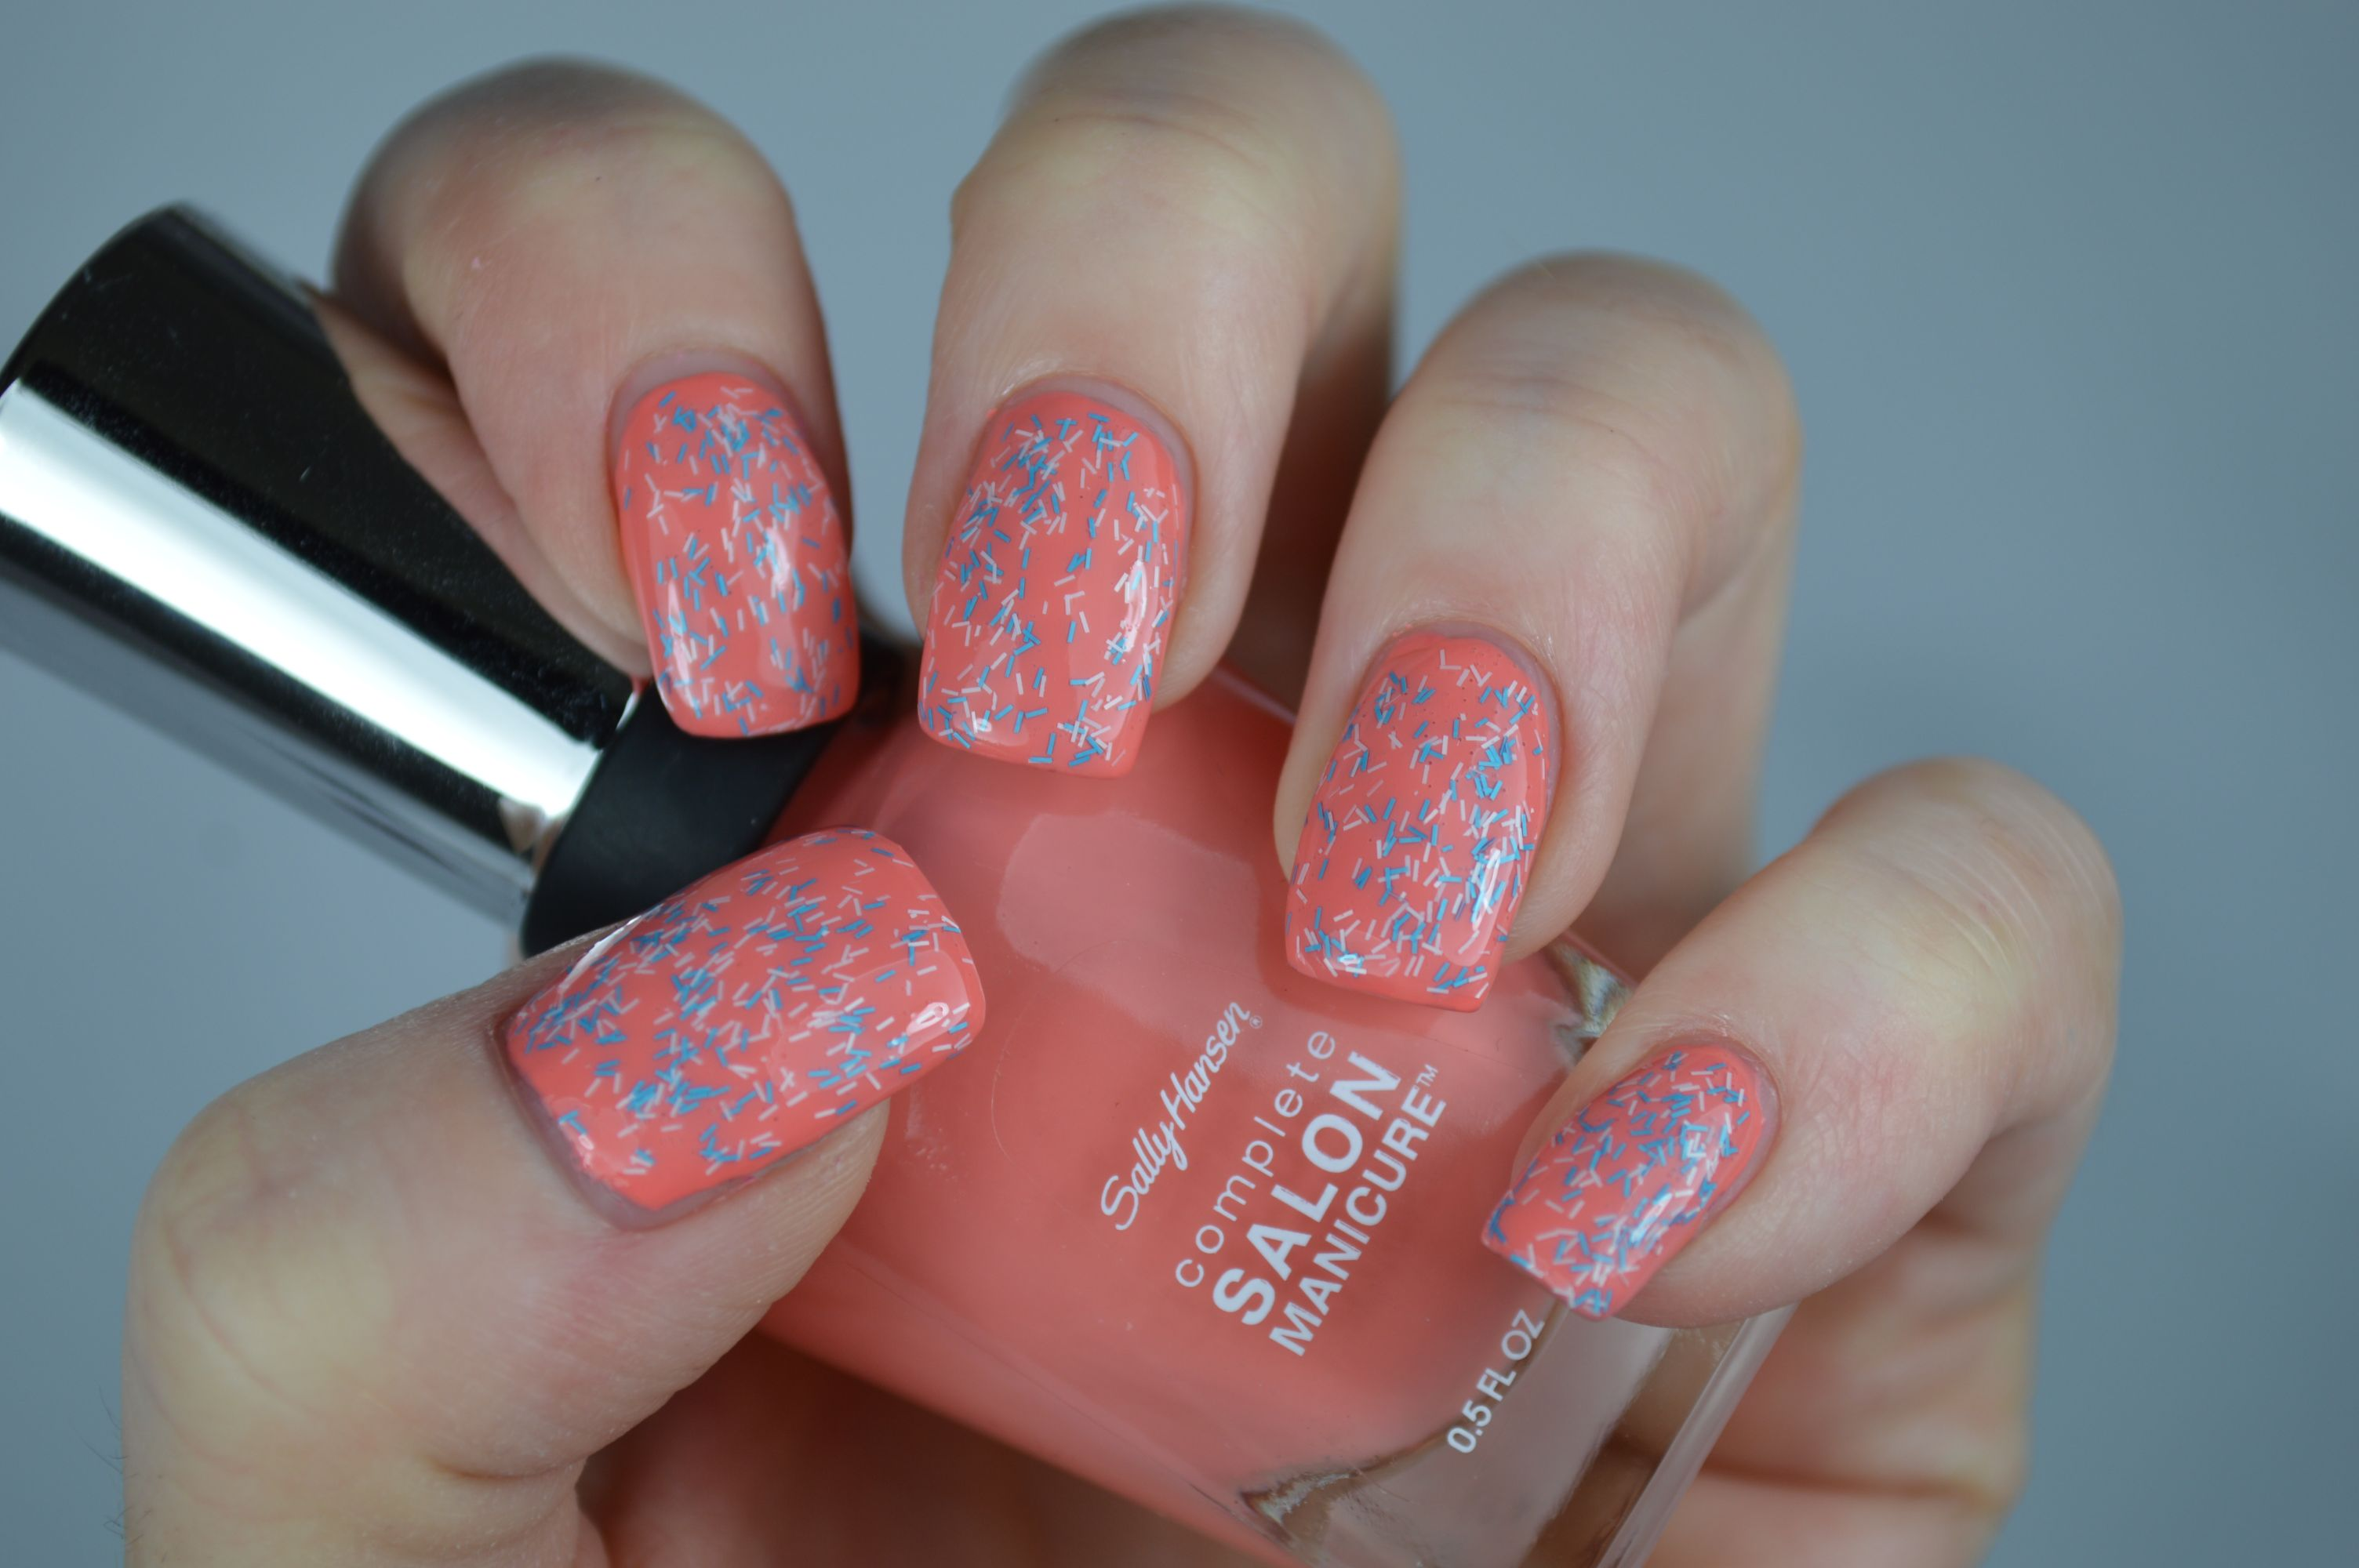 Nagellack Review Wool Knot Sally Hansen Fuzzy Coat Peach of Cake Swatches